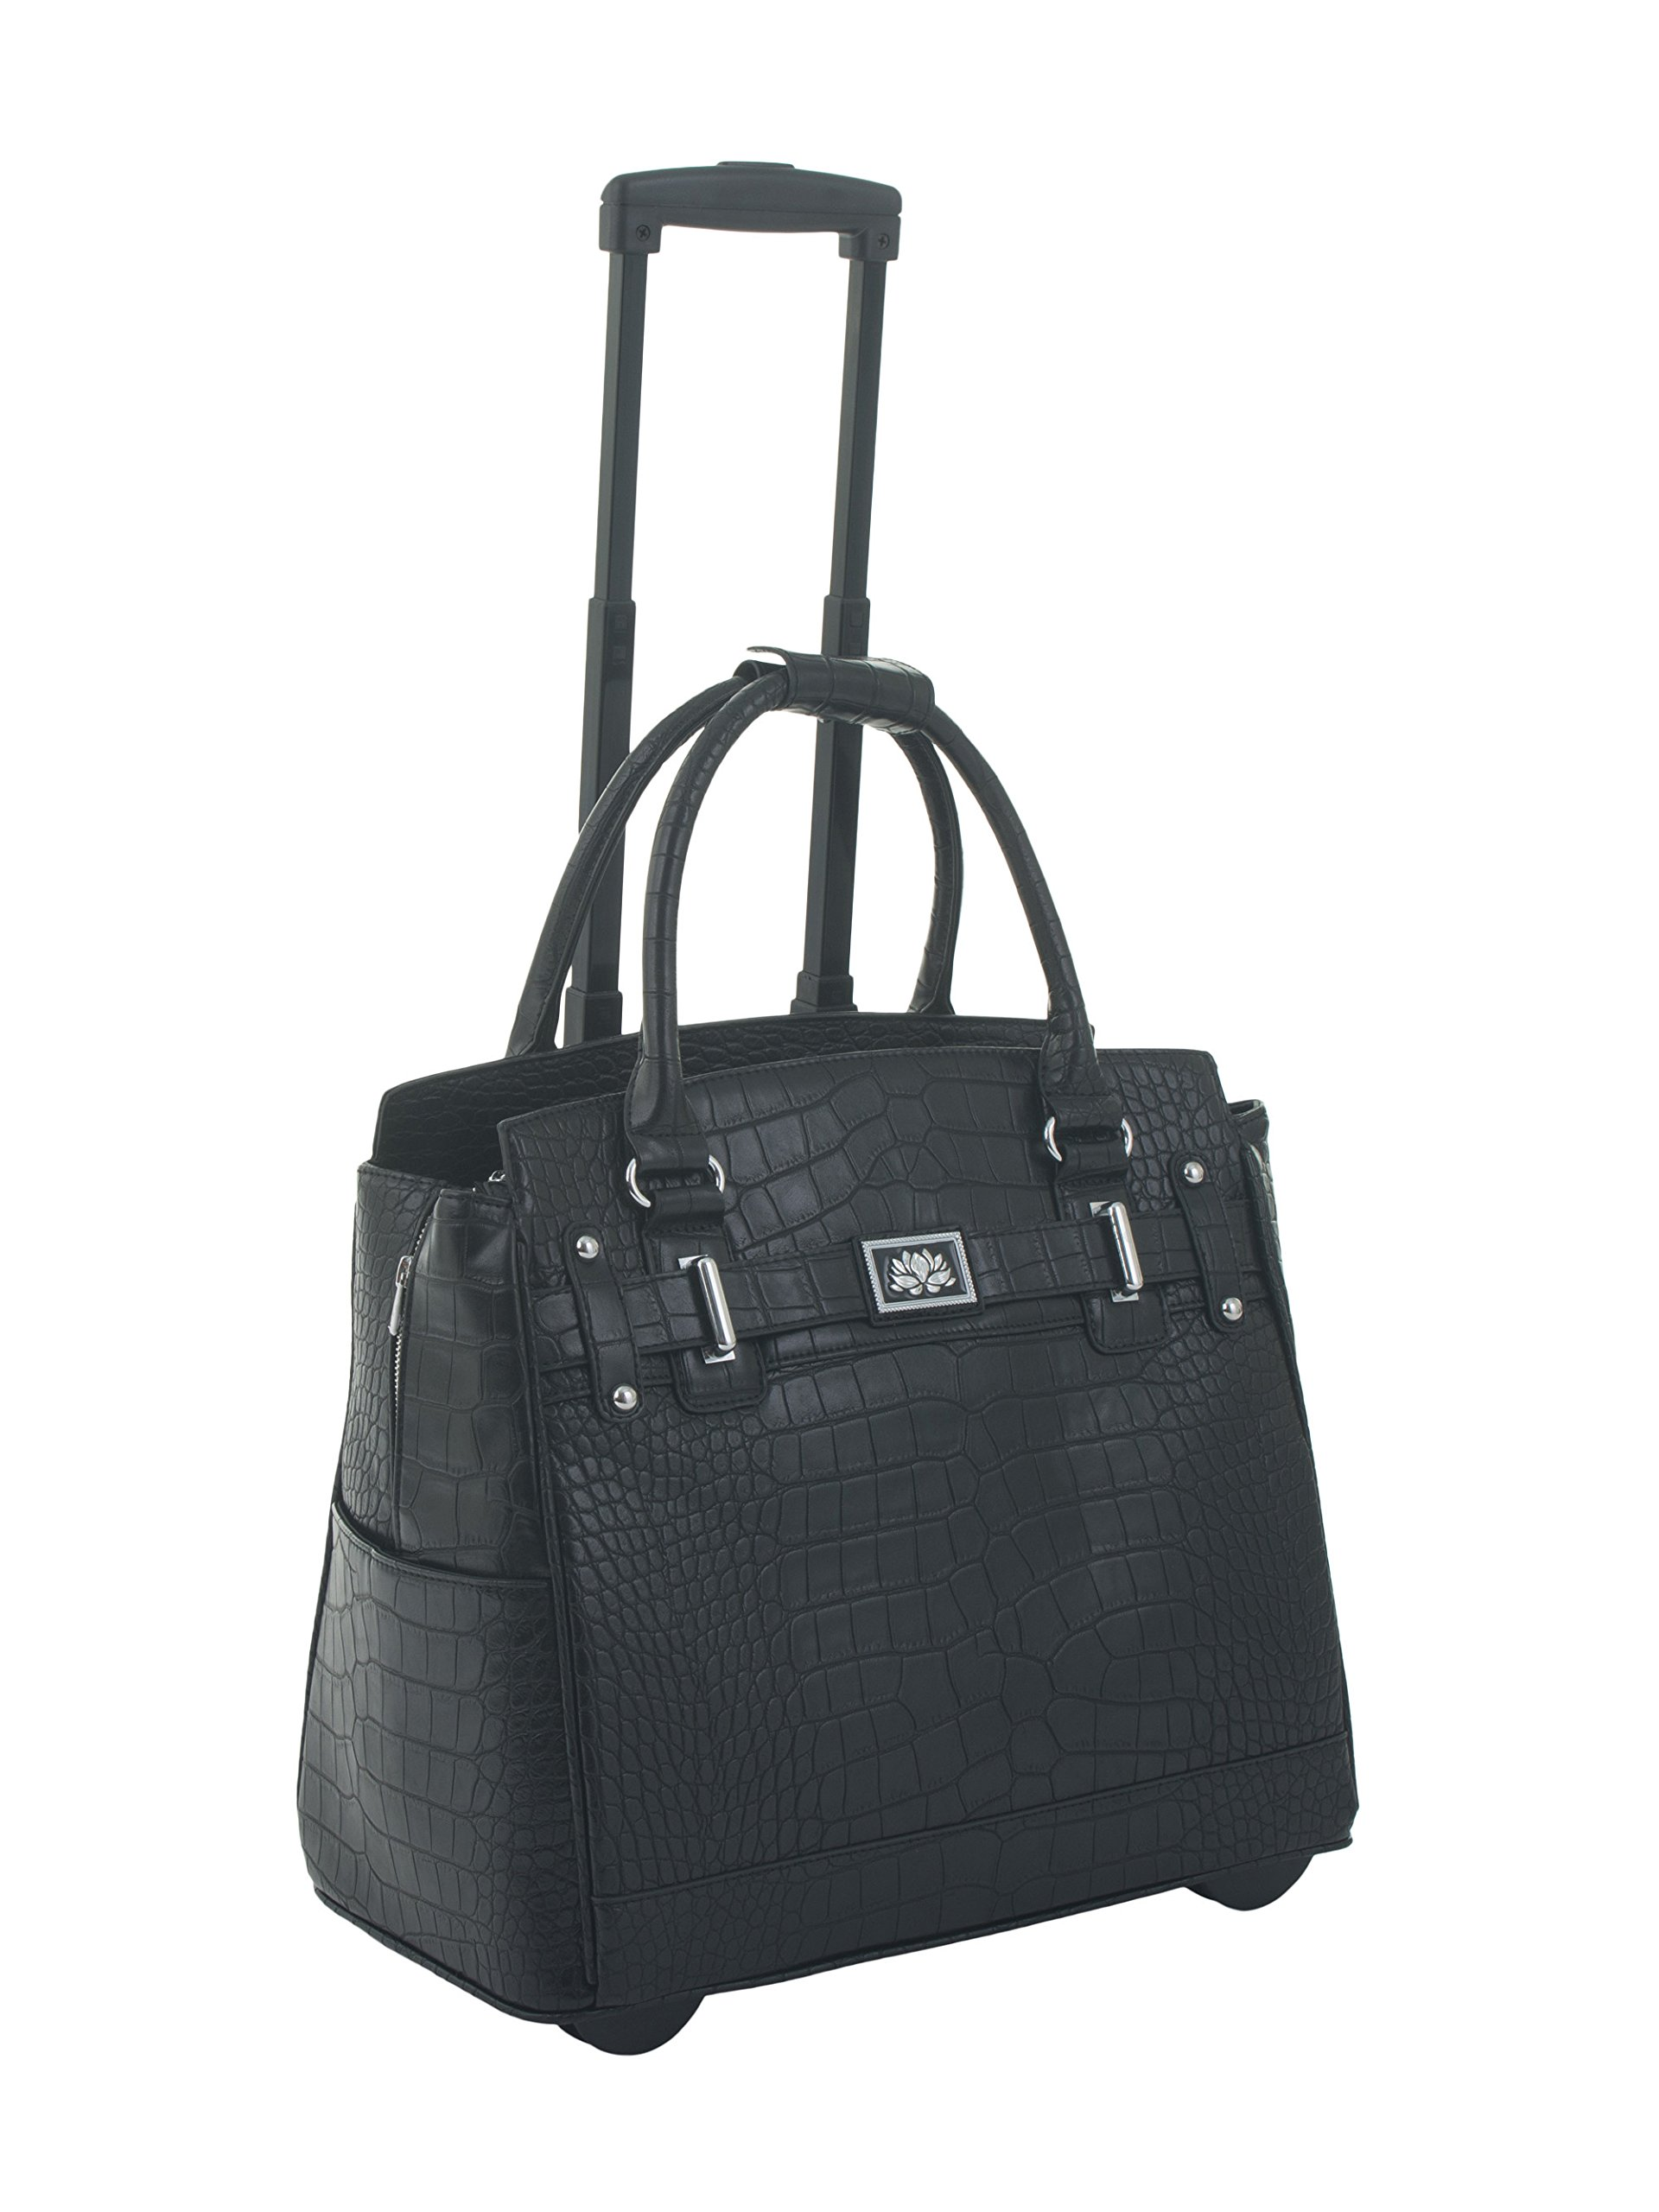 ''The Classic'' Black Alligator Crocodile Rolling iPad Tablet or Laptop Tote Carryall Bag